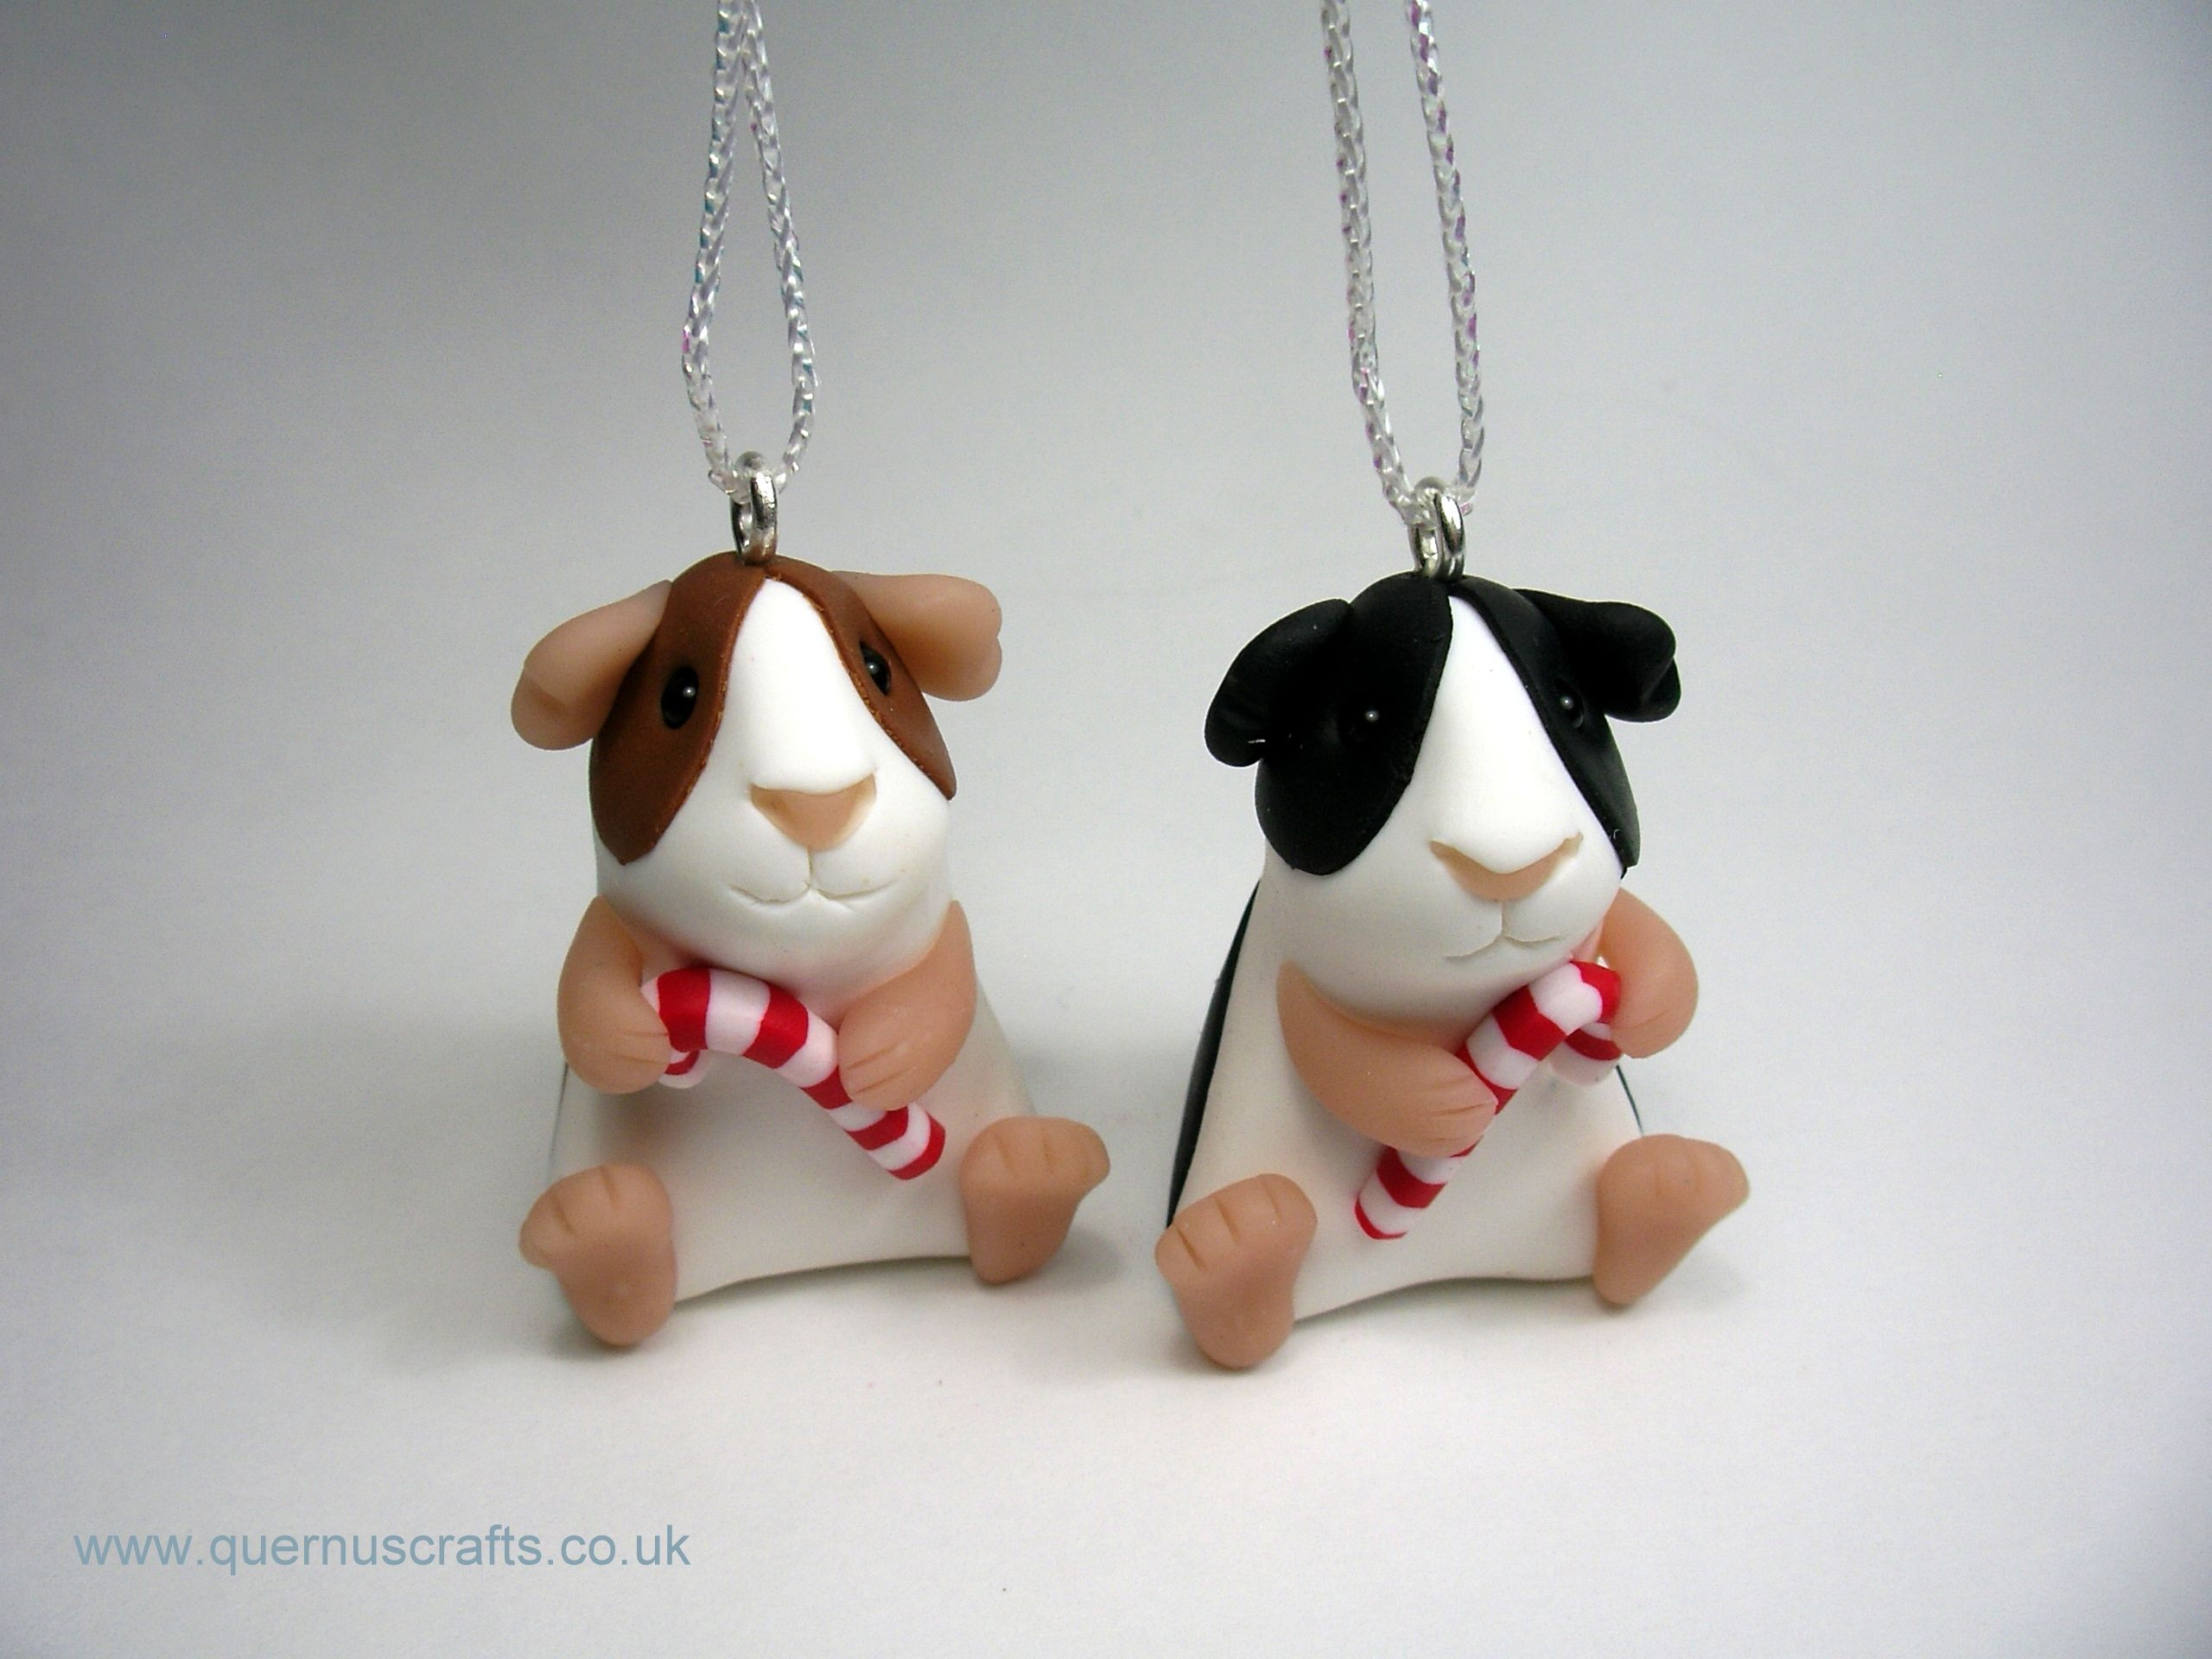 Little Candy Cane Guinea Pig Tree Decoration (£25)